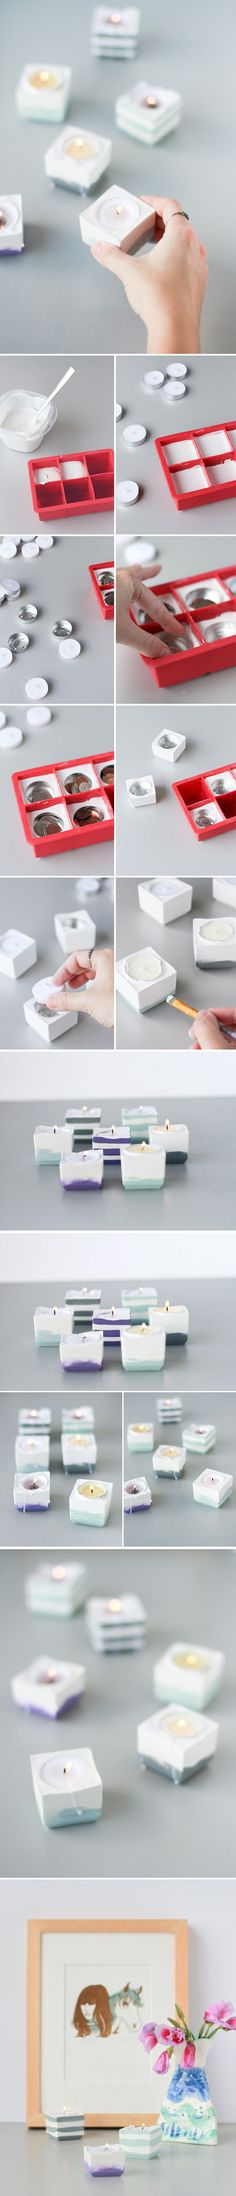 Here is a rough translation in English.   Plaster powdered (plaster of Paris?)  Water  A receptacle to mix plaster  1 spoon to mix  Square moulds of silicone   tealight  Mat acrylic paint and brush  Dull varnish